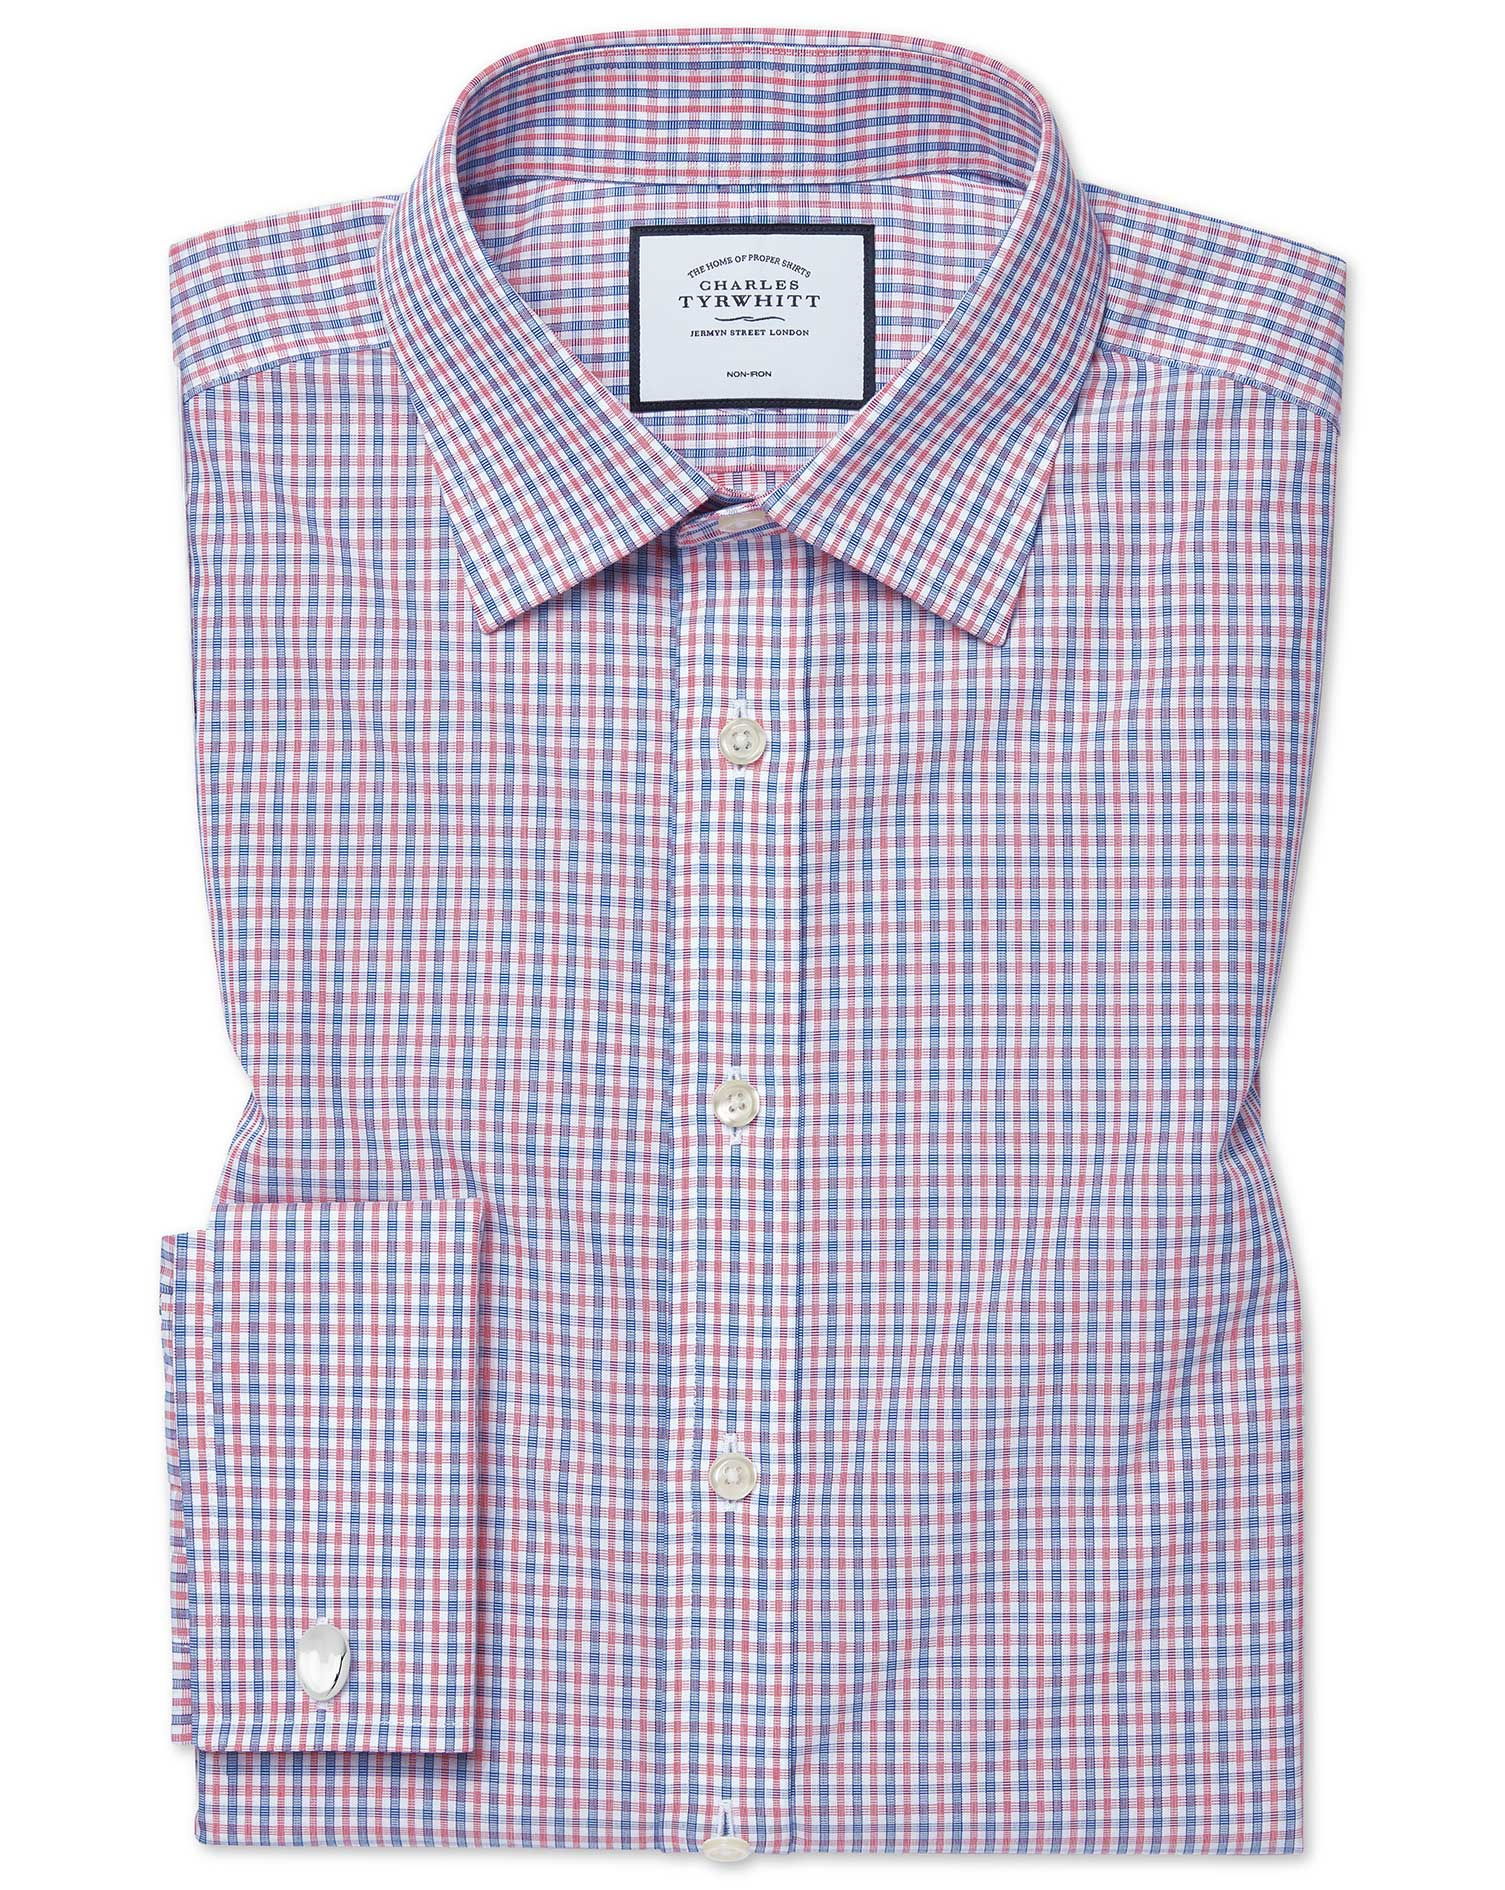 Slim Fit Non-Iron Poplin Blue and Red Cotton Formal Shirt Double Cuff Size 15/35 by Charles Tyrwhitt